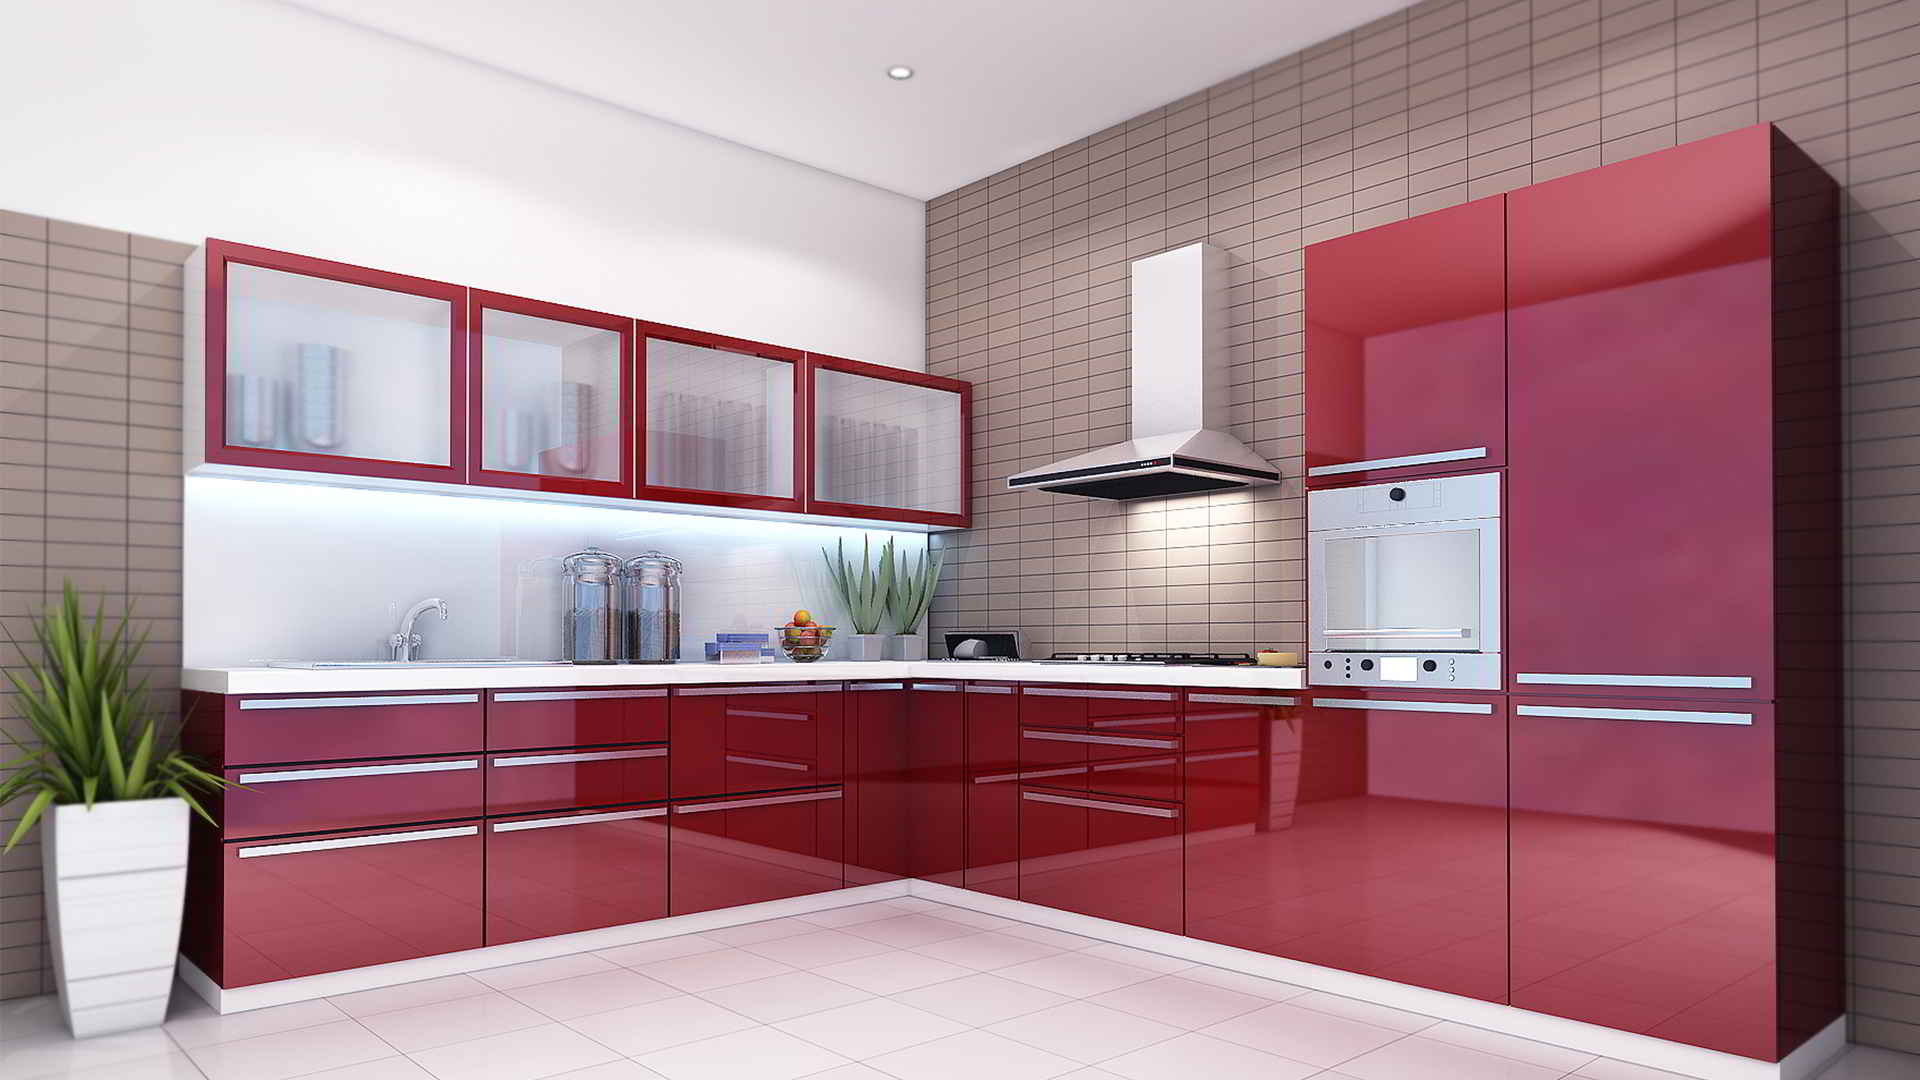 25 latest design ideas of modular kitchen pictures for Kitchen designs modular